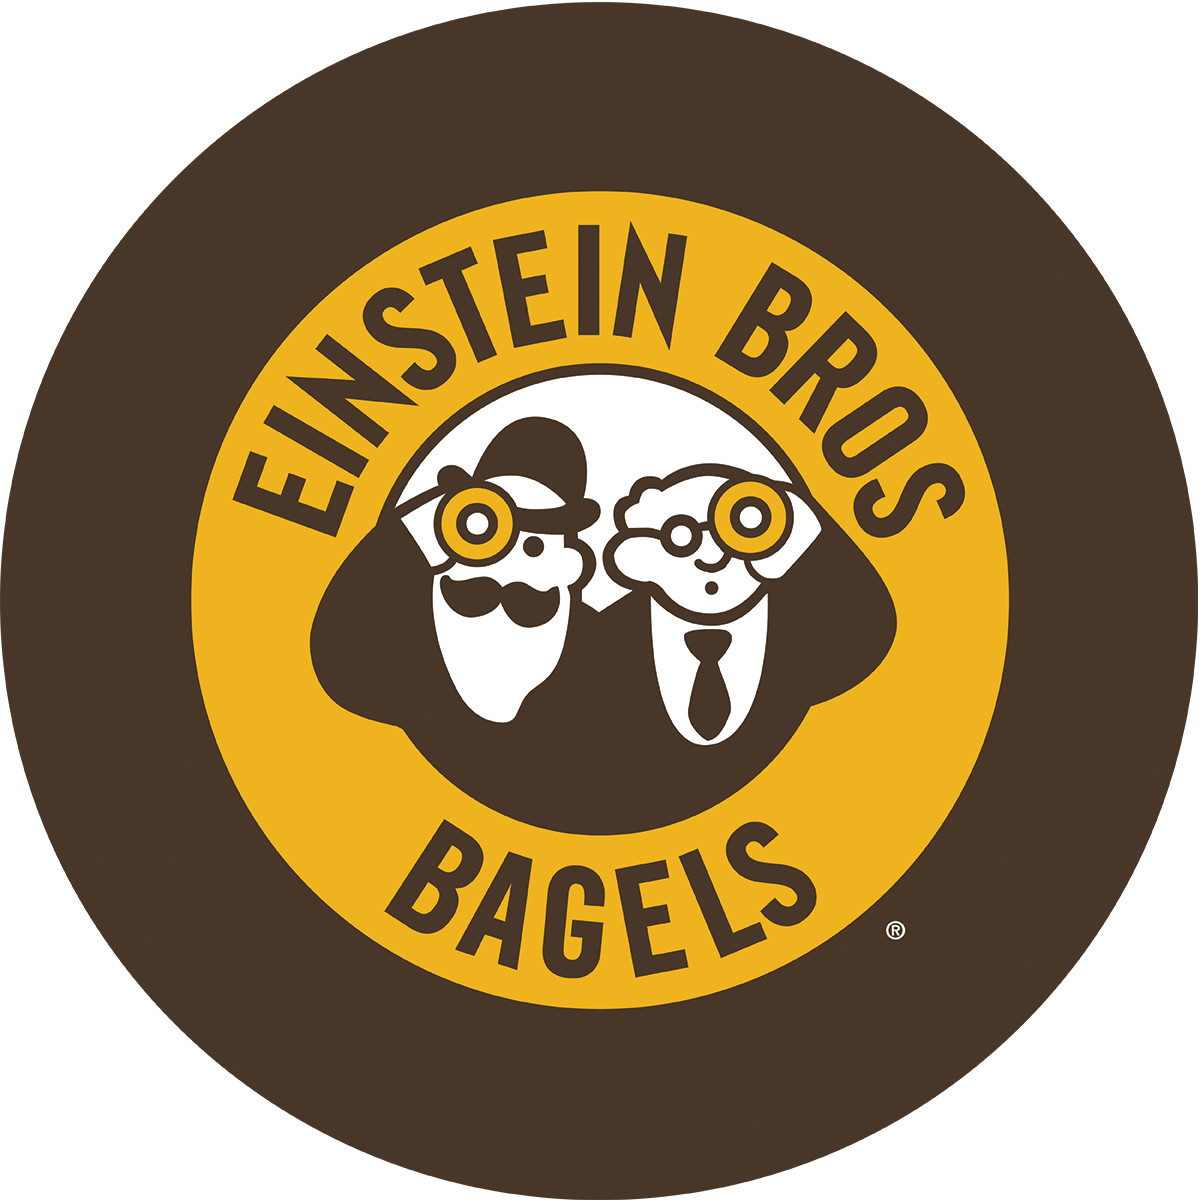 Einstein Bros. Bagels - CLOSED